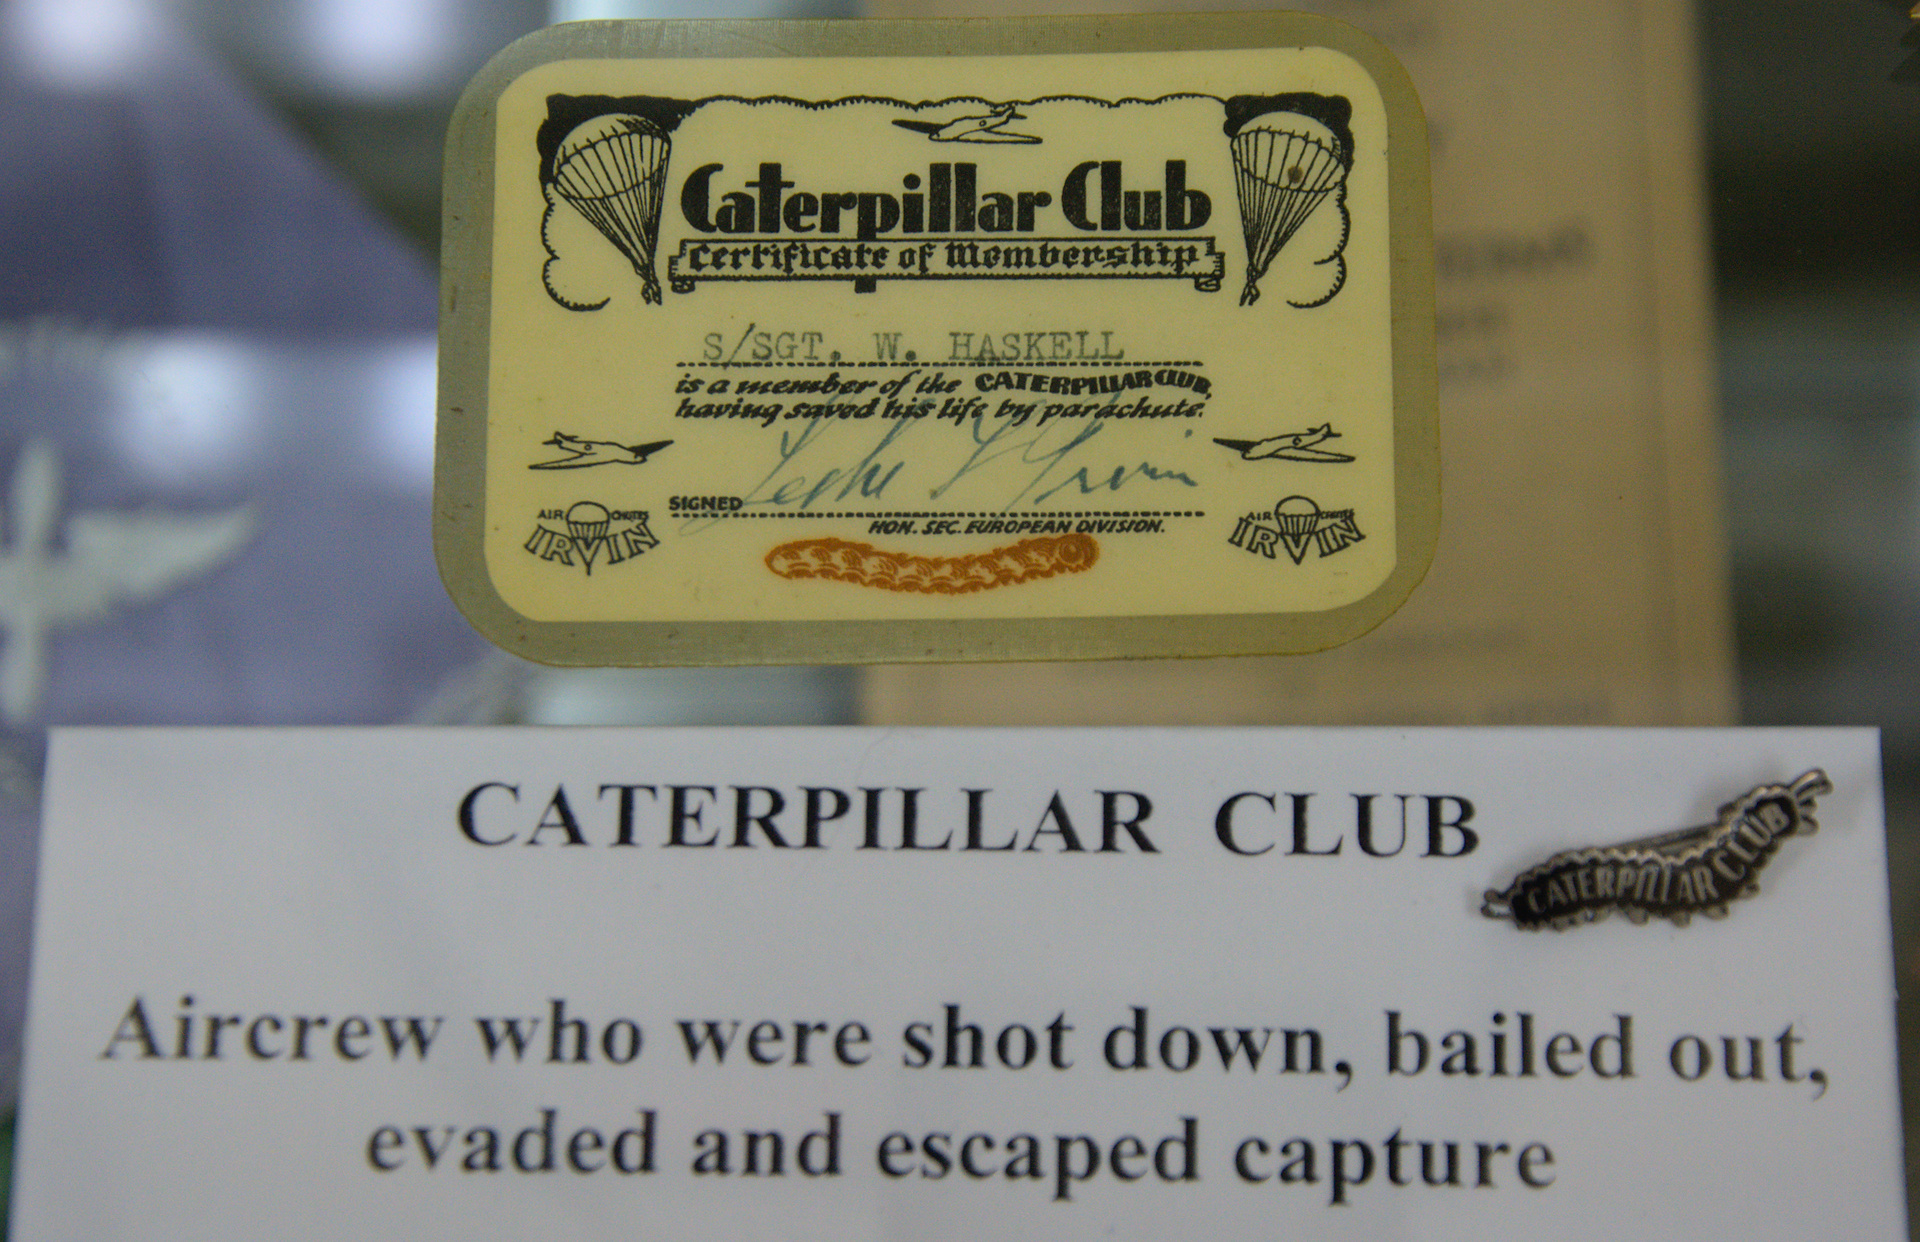 Irvin Caterpillar Club Membership Certificate and Switlik Caterpillar Club pin